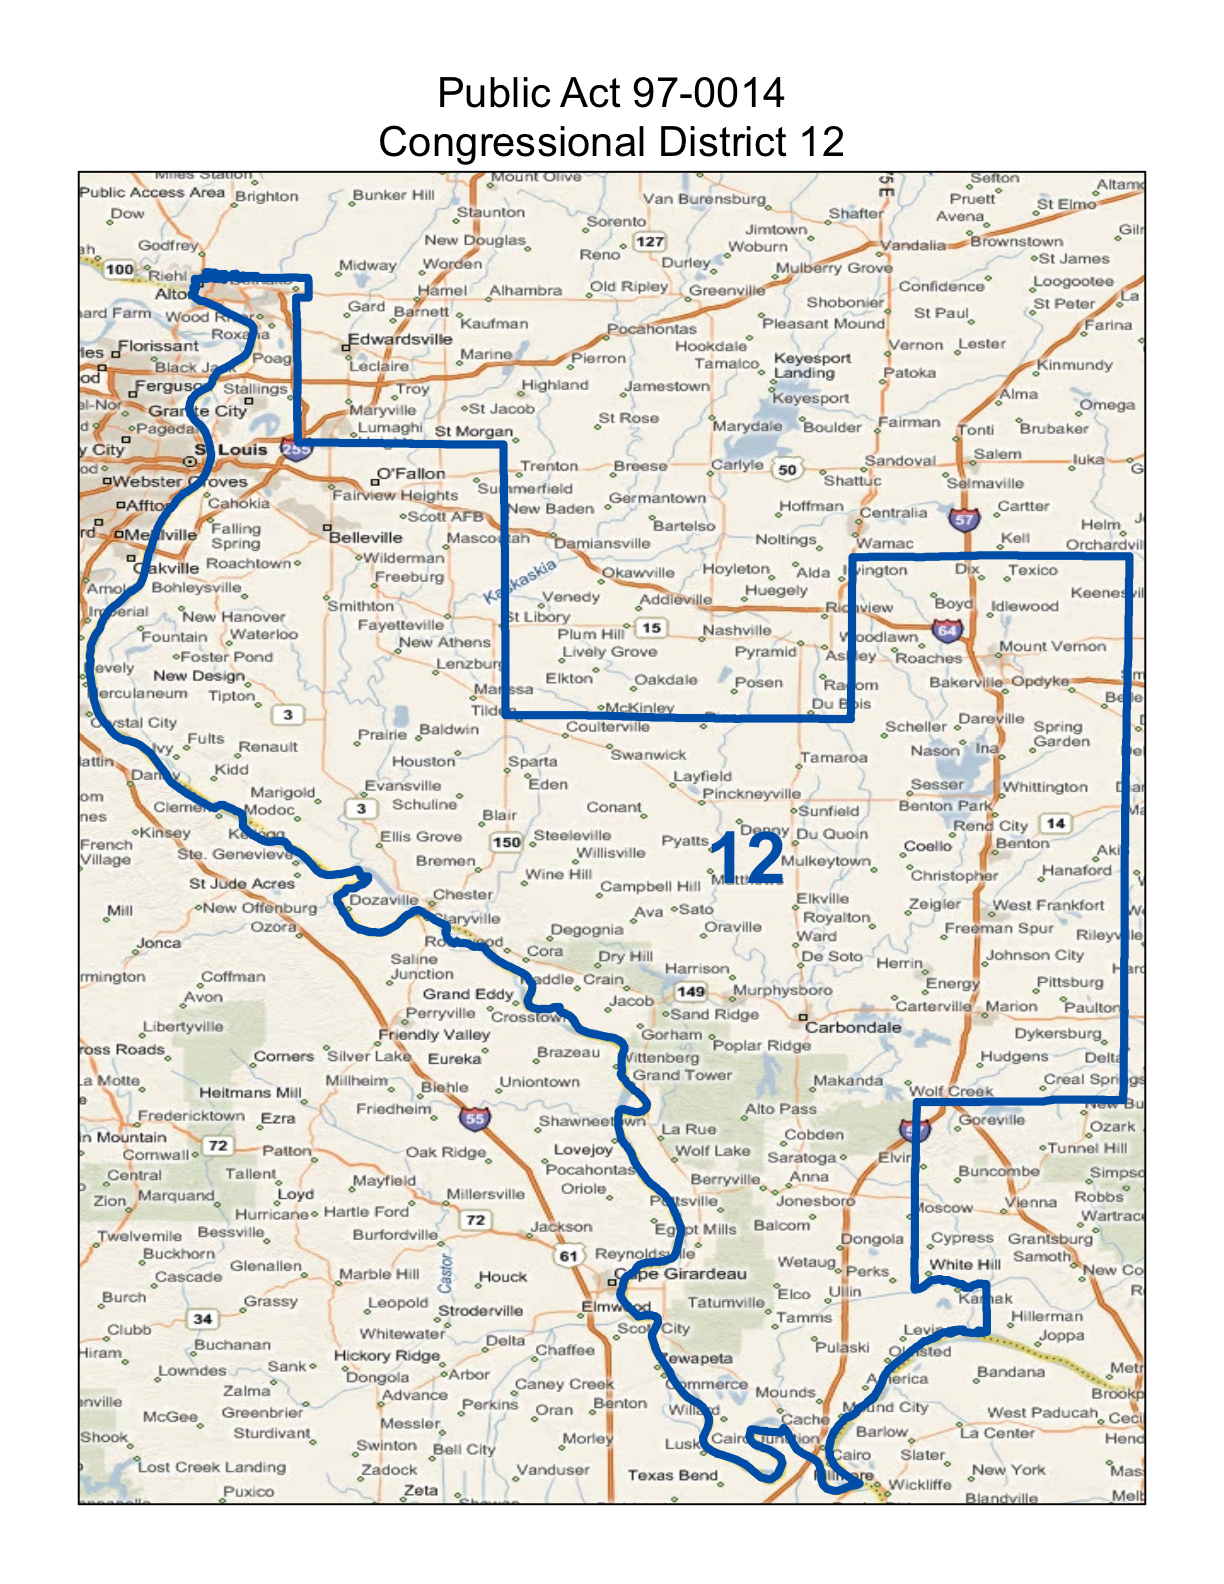 map of realigned illinois 12th congressional district